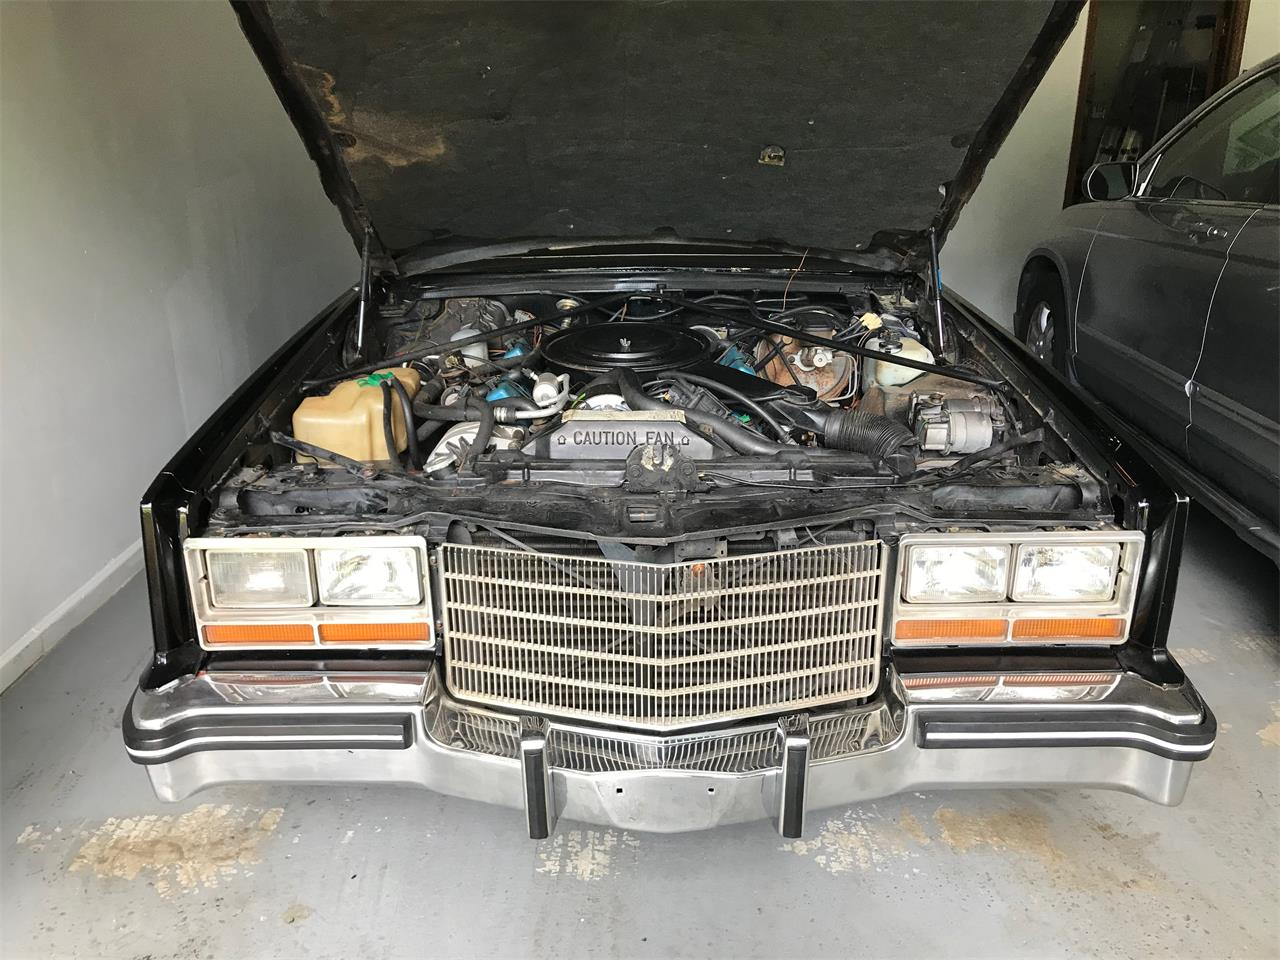 1981 Cadillac Eldorado Biarritz for sale in Snellville, GA – photo 4